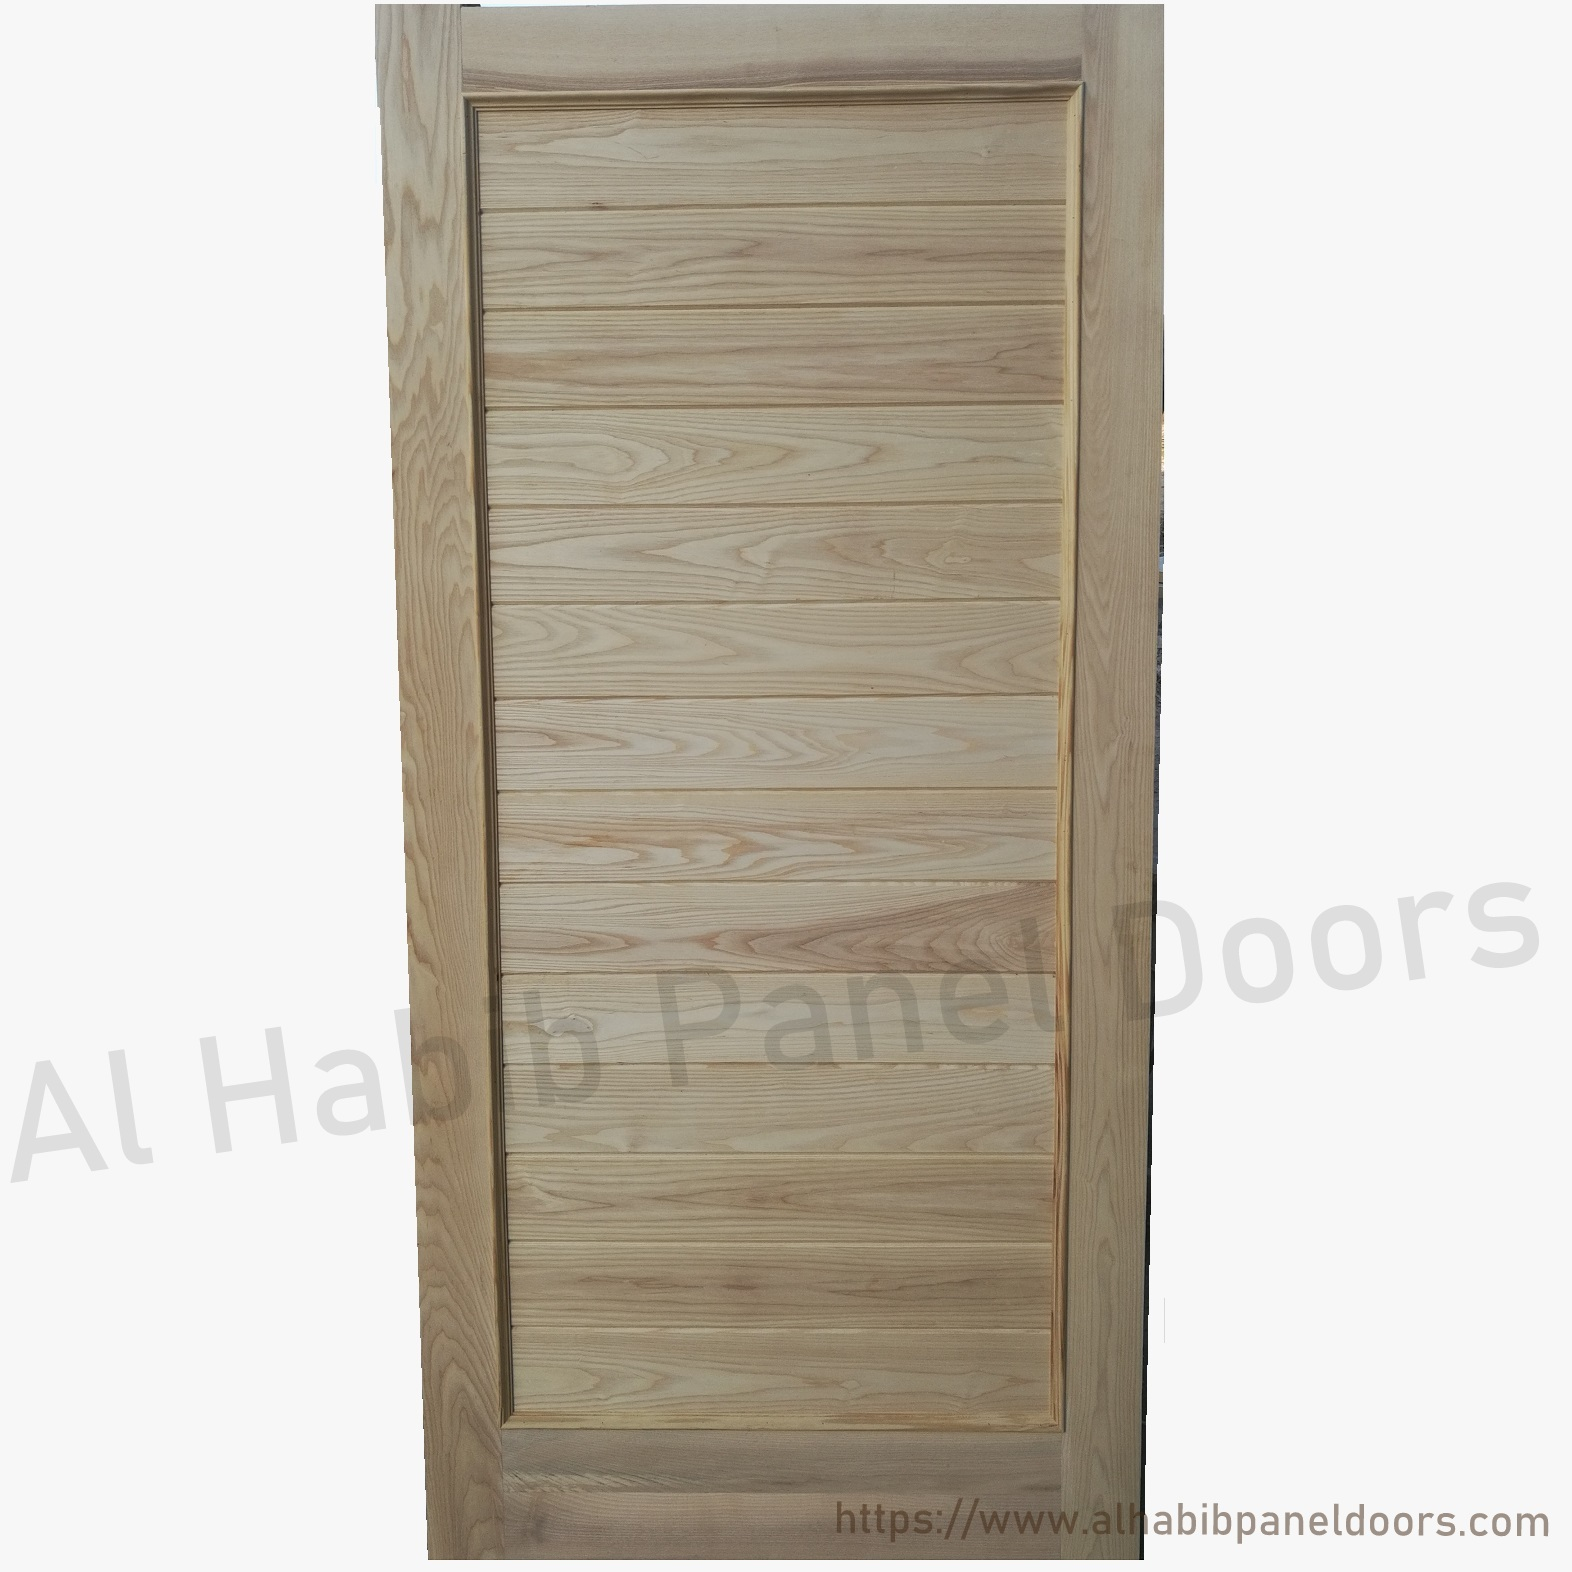 Ash wood door design hpd423 solid wood doors al habib for Wooden door designs pictures